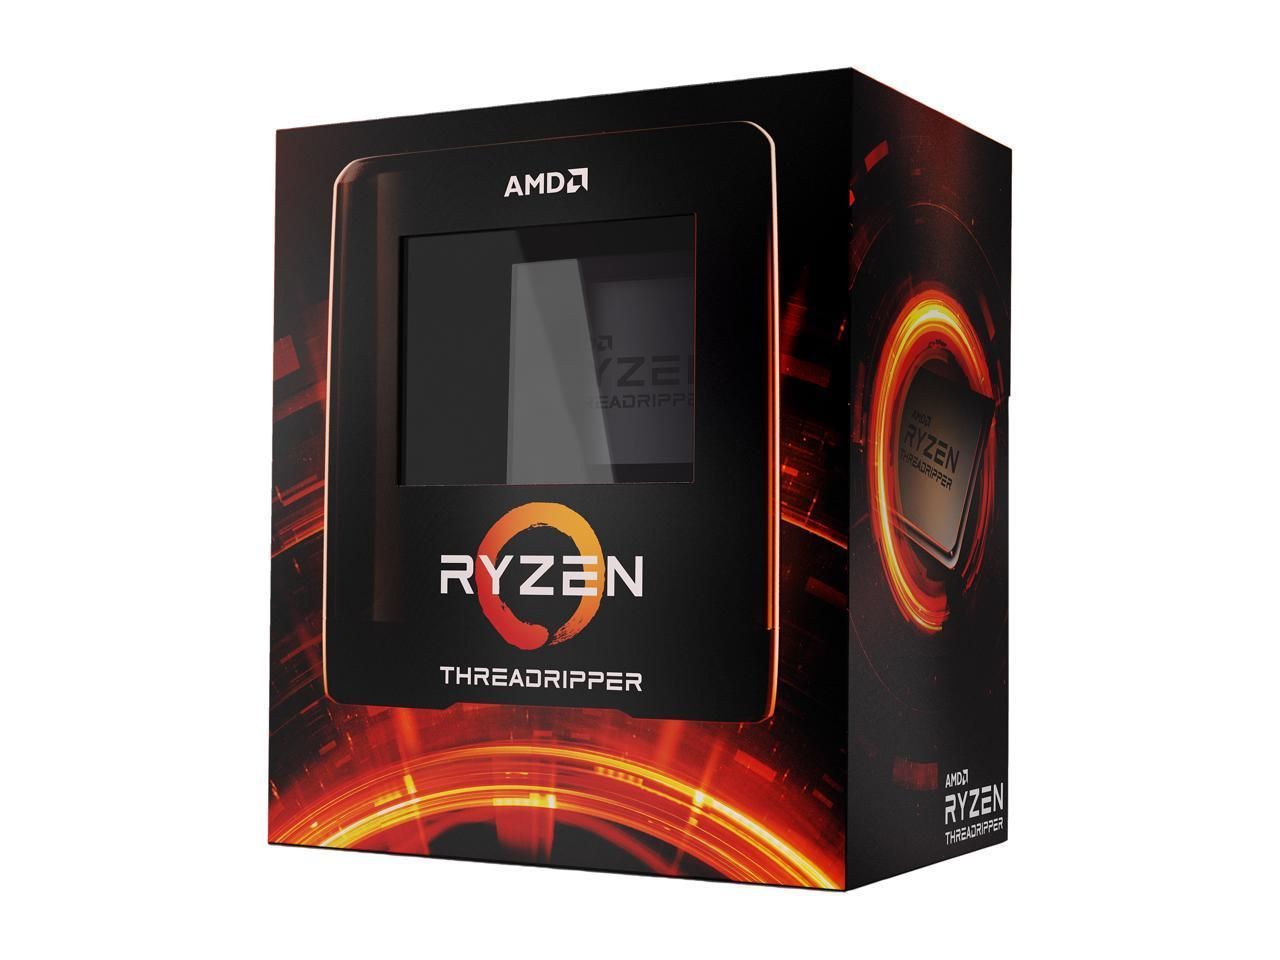 Процесор AMD RYZEN Threadripper 3970X 32-Core / 64-Threads 3.7 GHz (up to 4.50Ghz) 144MB Cache Socket TRX4 280W